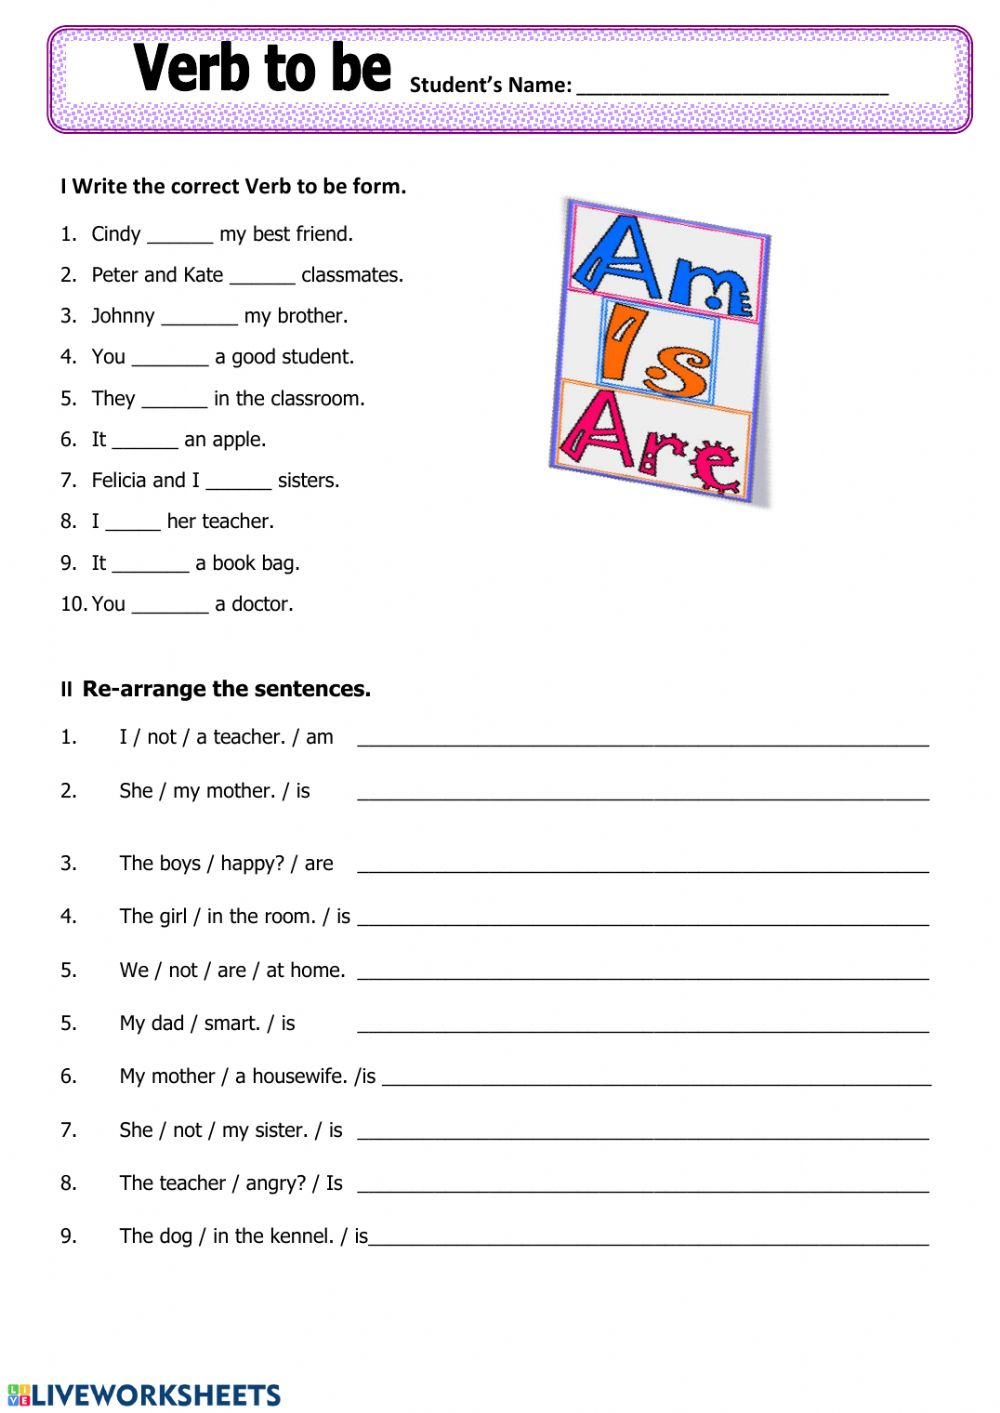 hight resolution of Verb to be online worksheet for 3rd grade